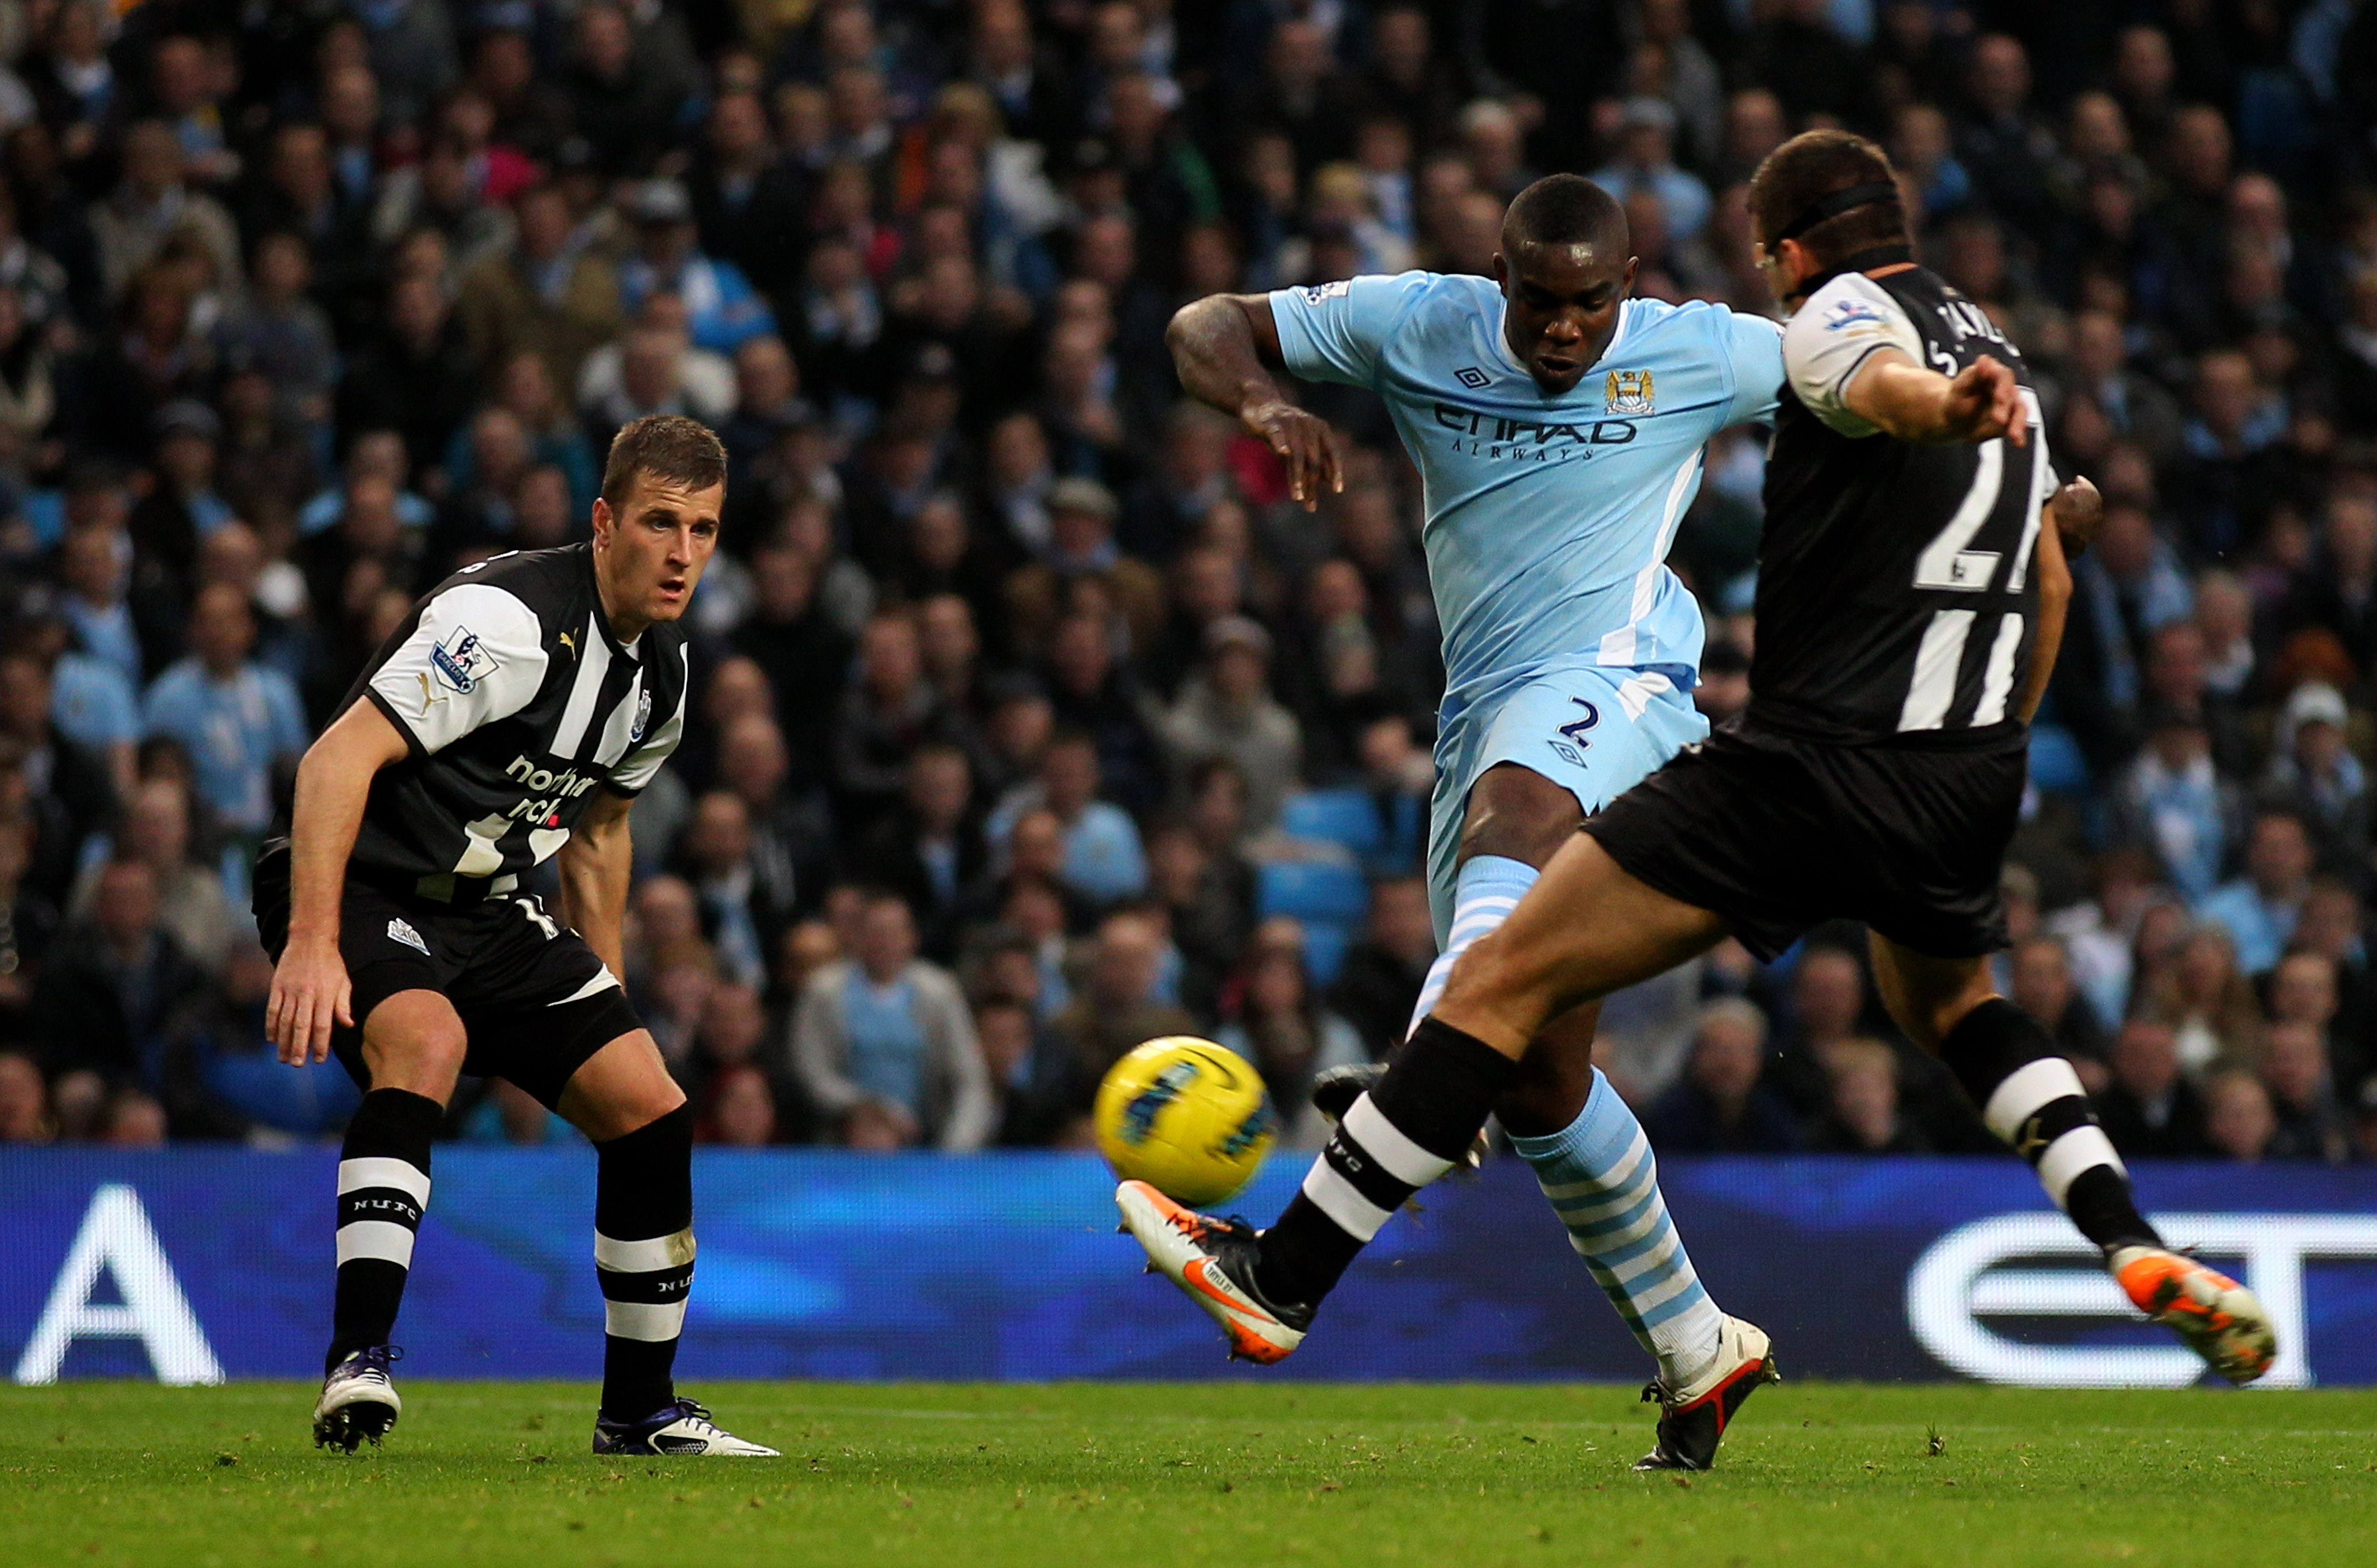 Man City Fixtures: History Of The Fixture: Manchester City Visit Newcastle